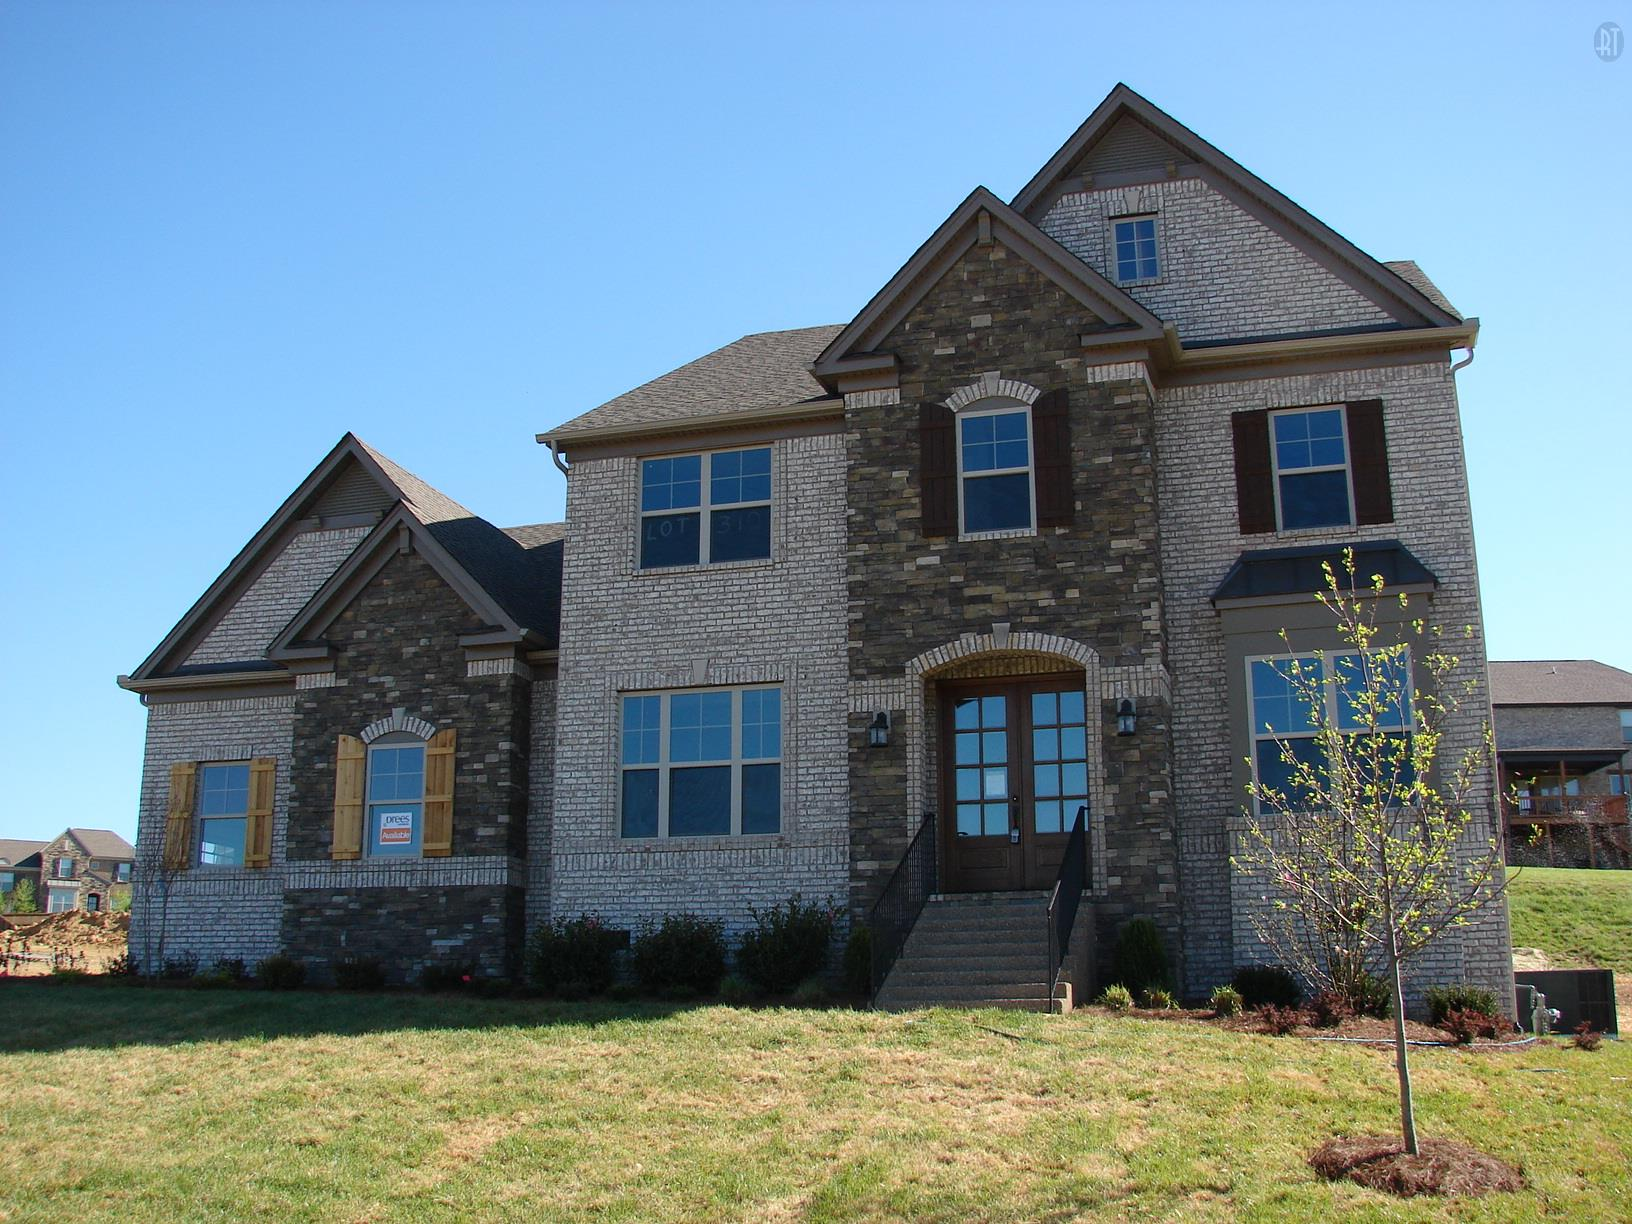 555 Great Angelica Way #310, Nolensville in Williamson County County, TN 37135 Home for Sale